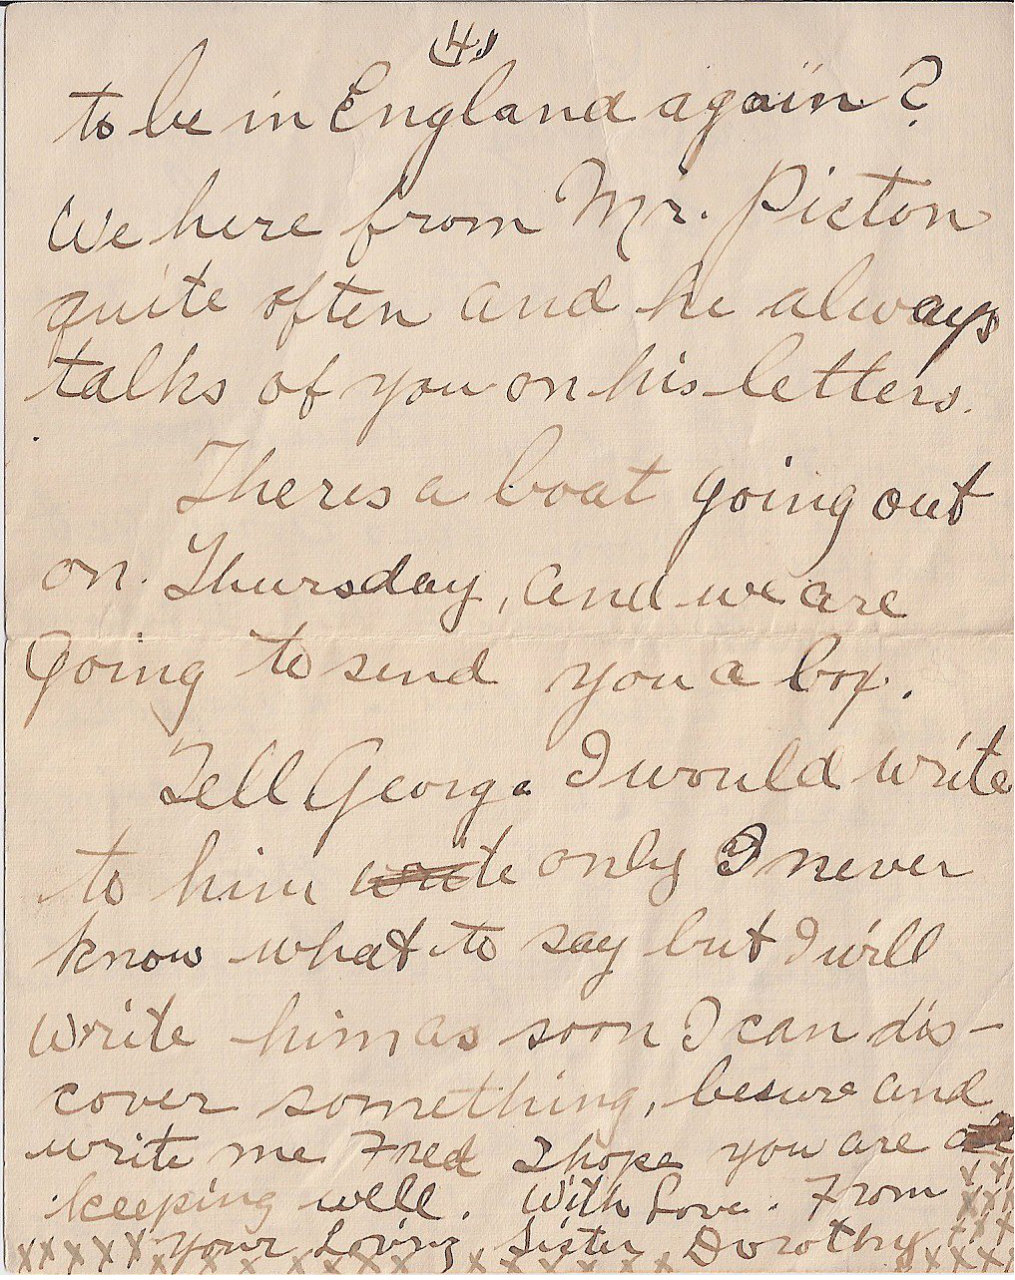 Letter to FREDERICK CHARLES SWAIT– The fourth of four pages of a letter sent from my grandmother to Uncle Fred, returned to her because he was deceased.